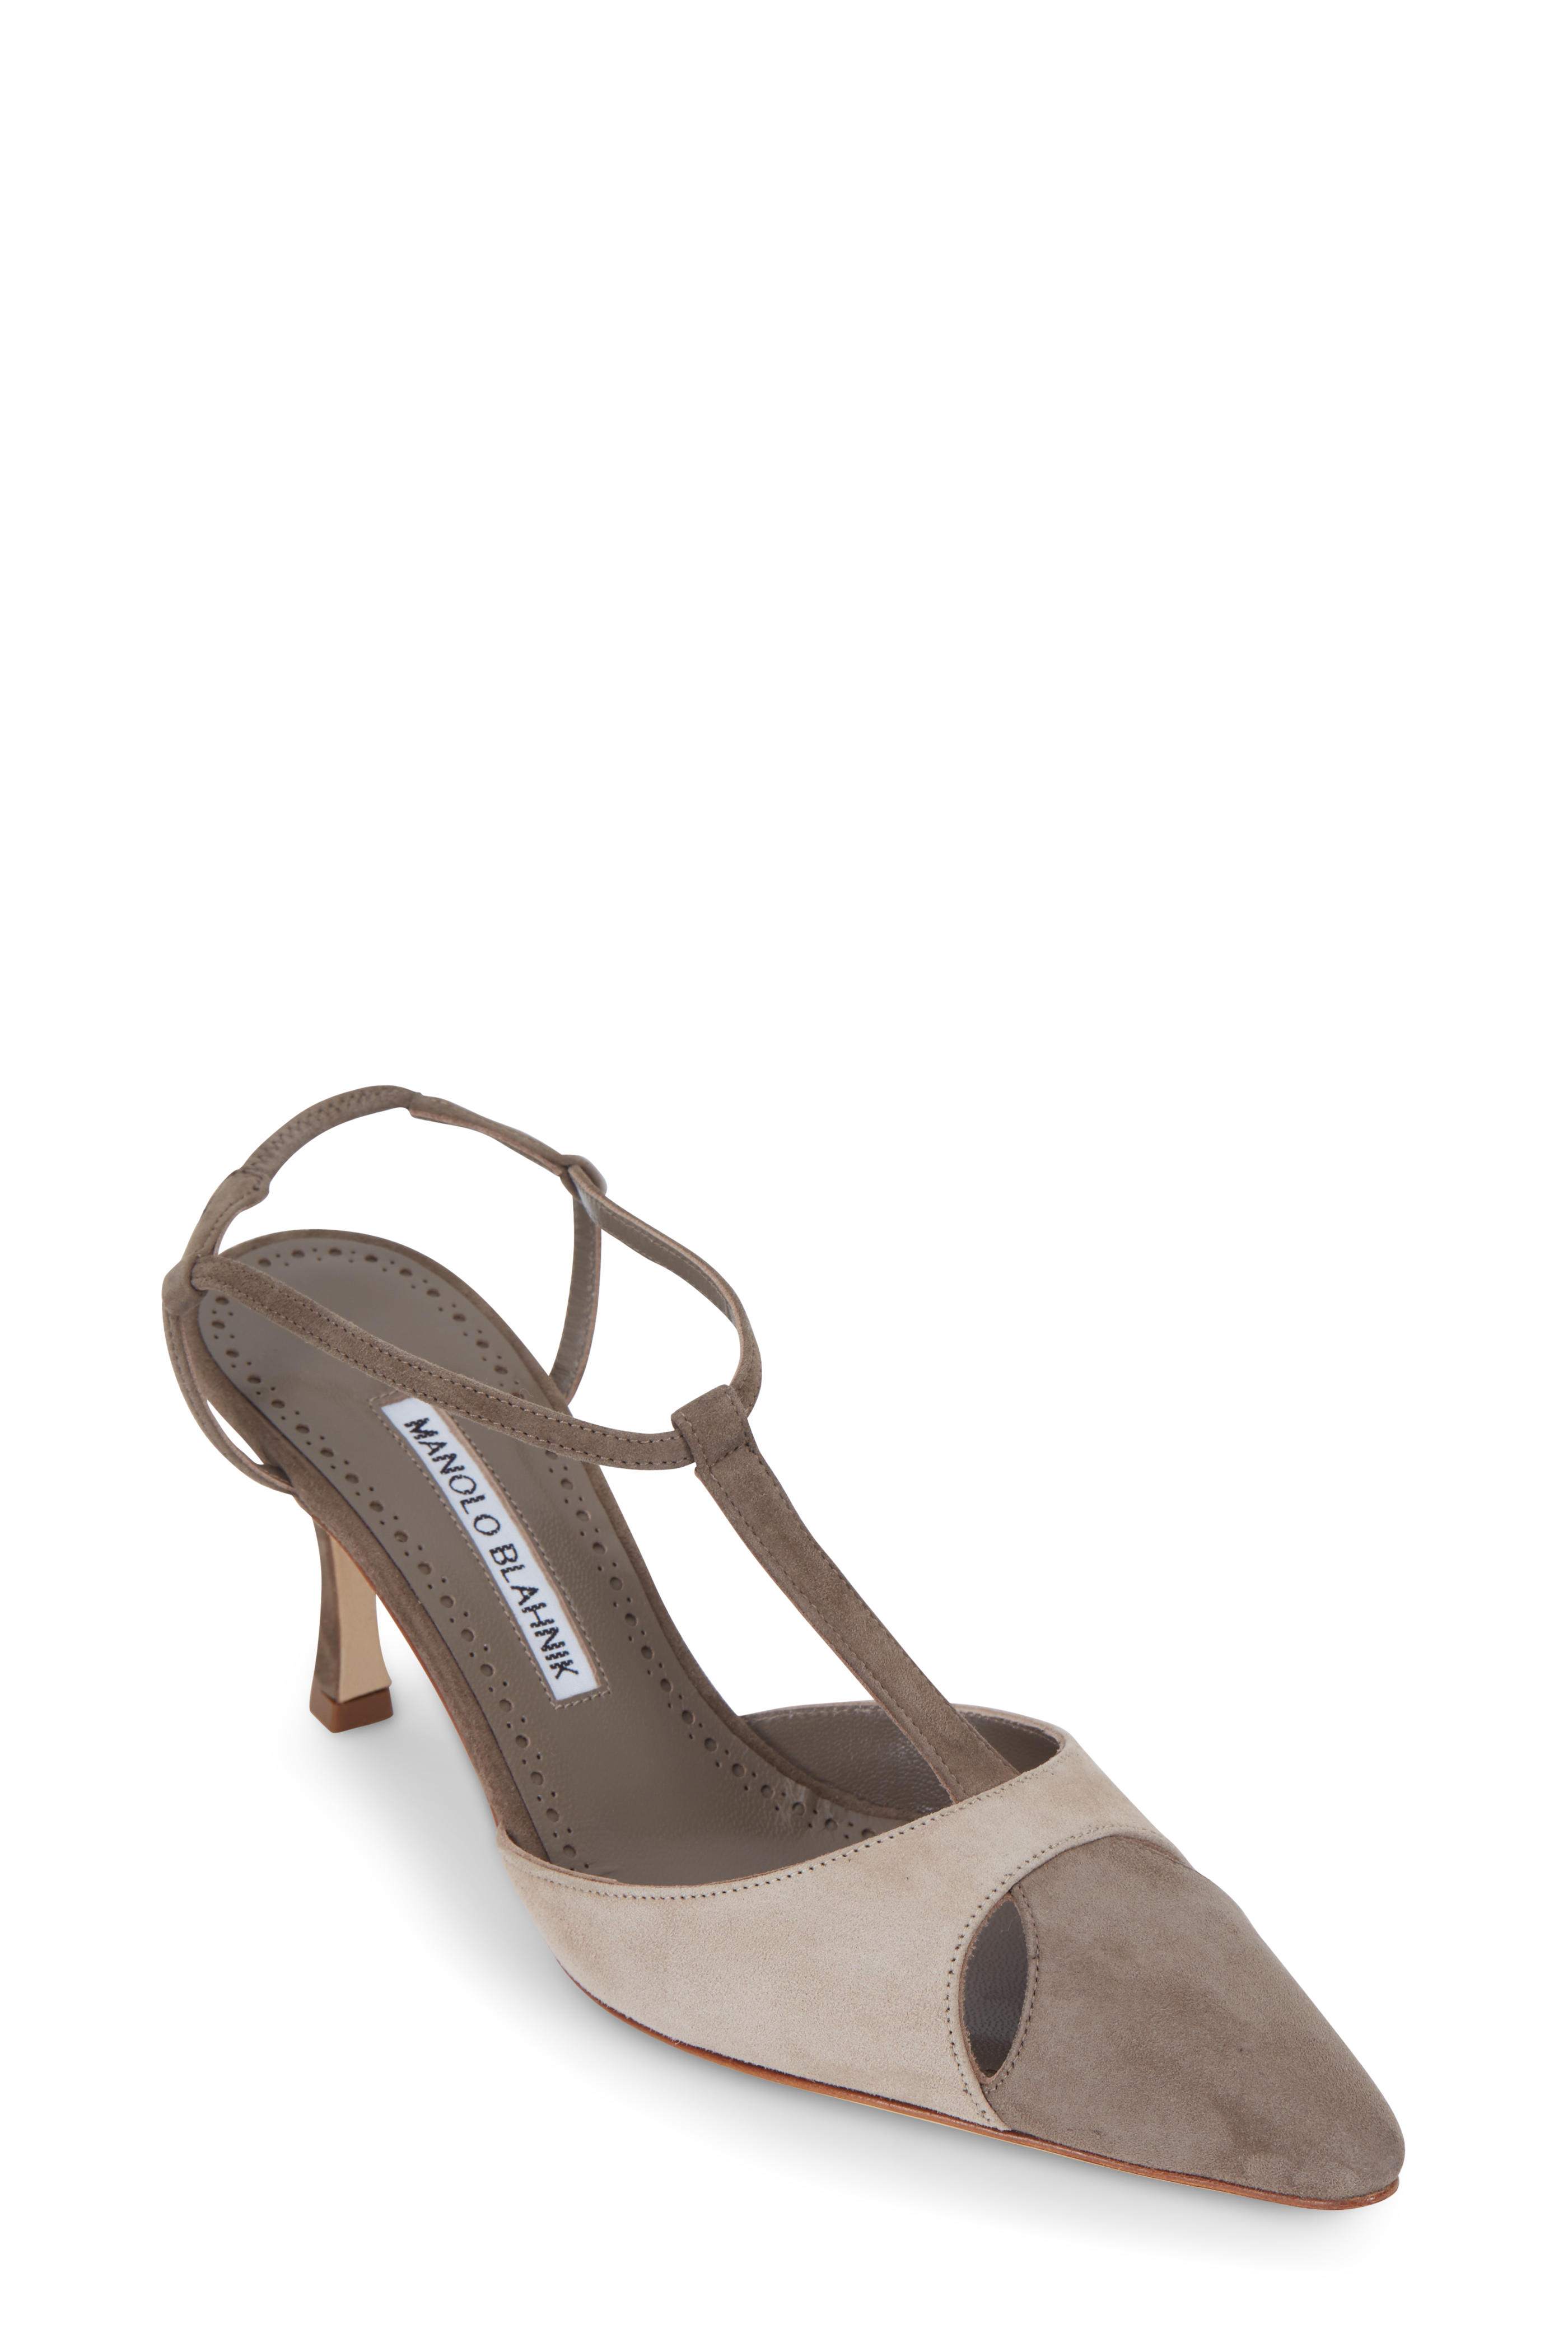 80ff9d167052b Manolo Blahnik - Turgimod Taupe Suede T-Strap Pump, 70mm | Mitchell ...